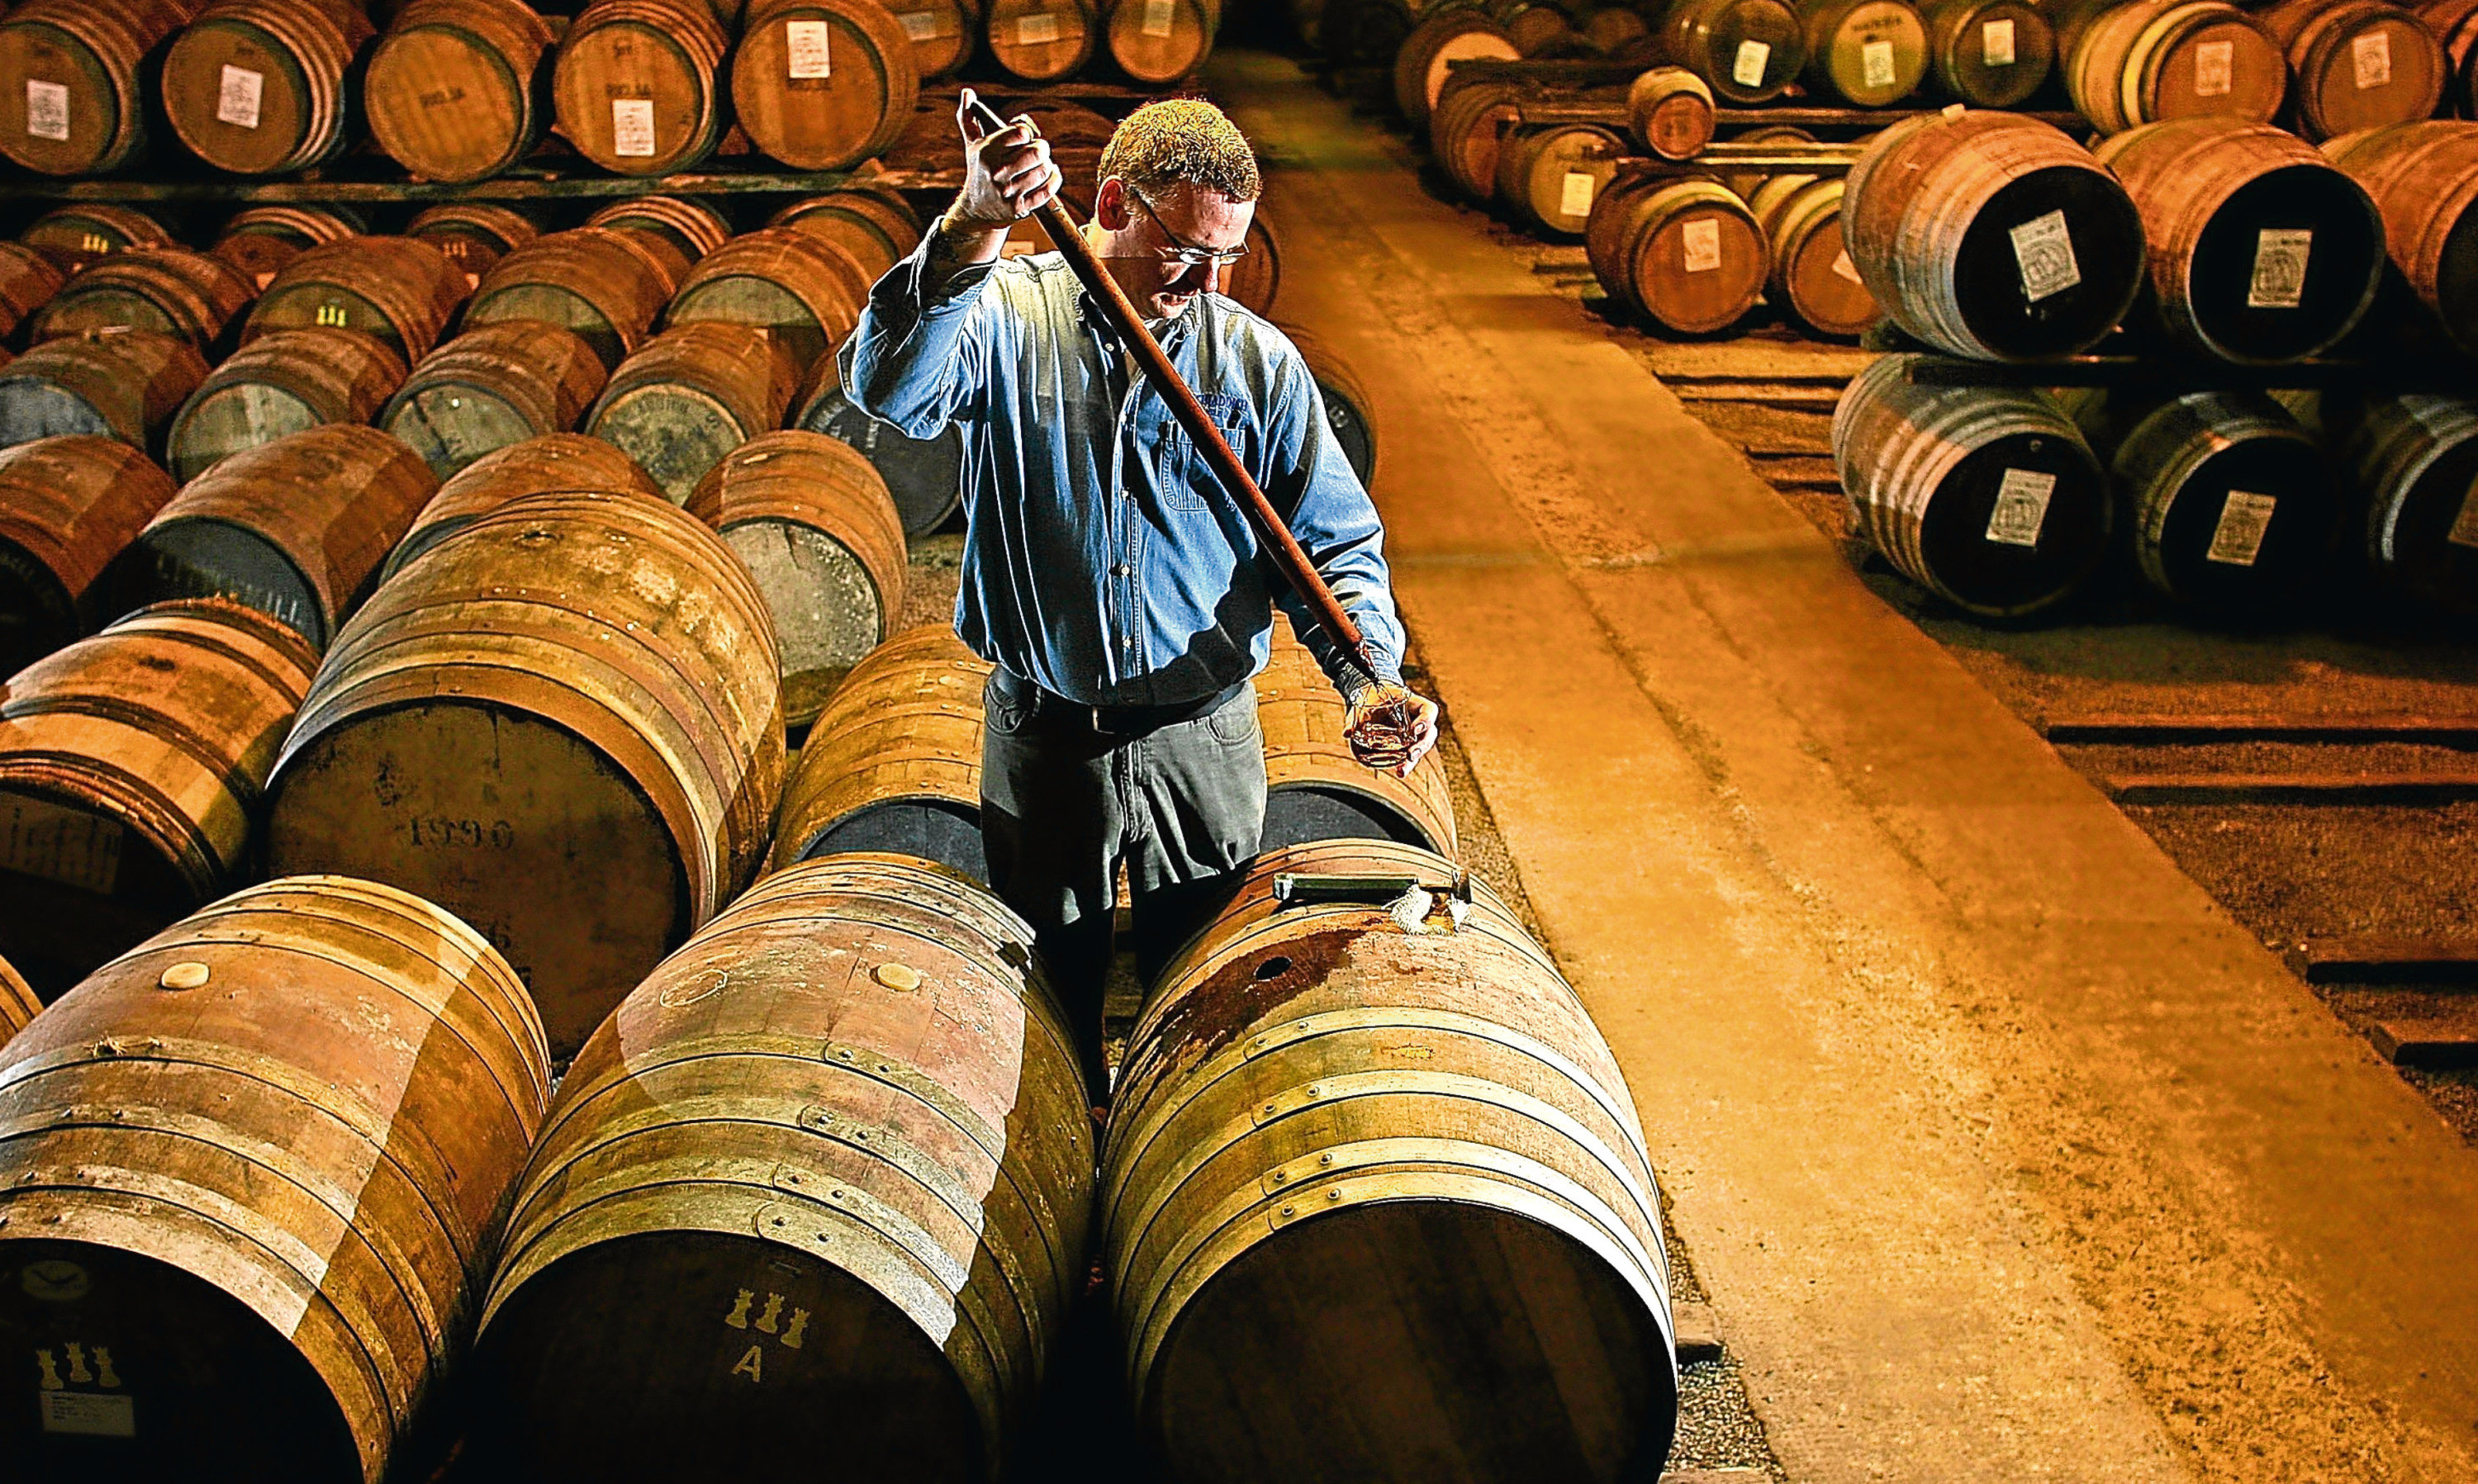 A whisky sample is taken from a cask at  Bruichladdich in Islay.